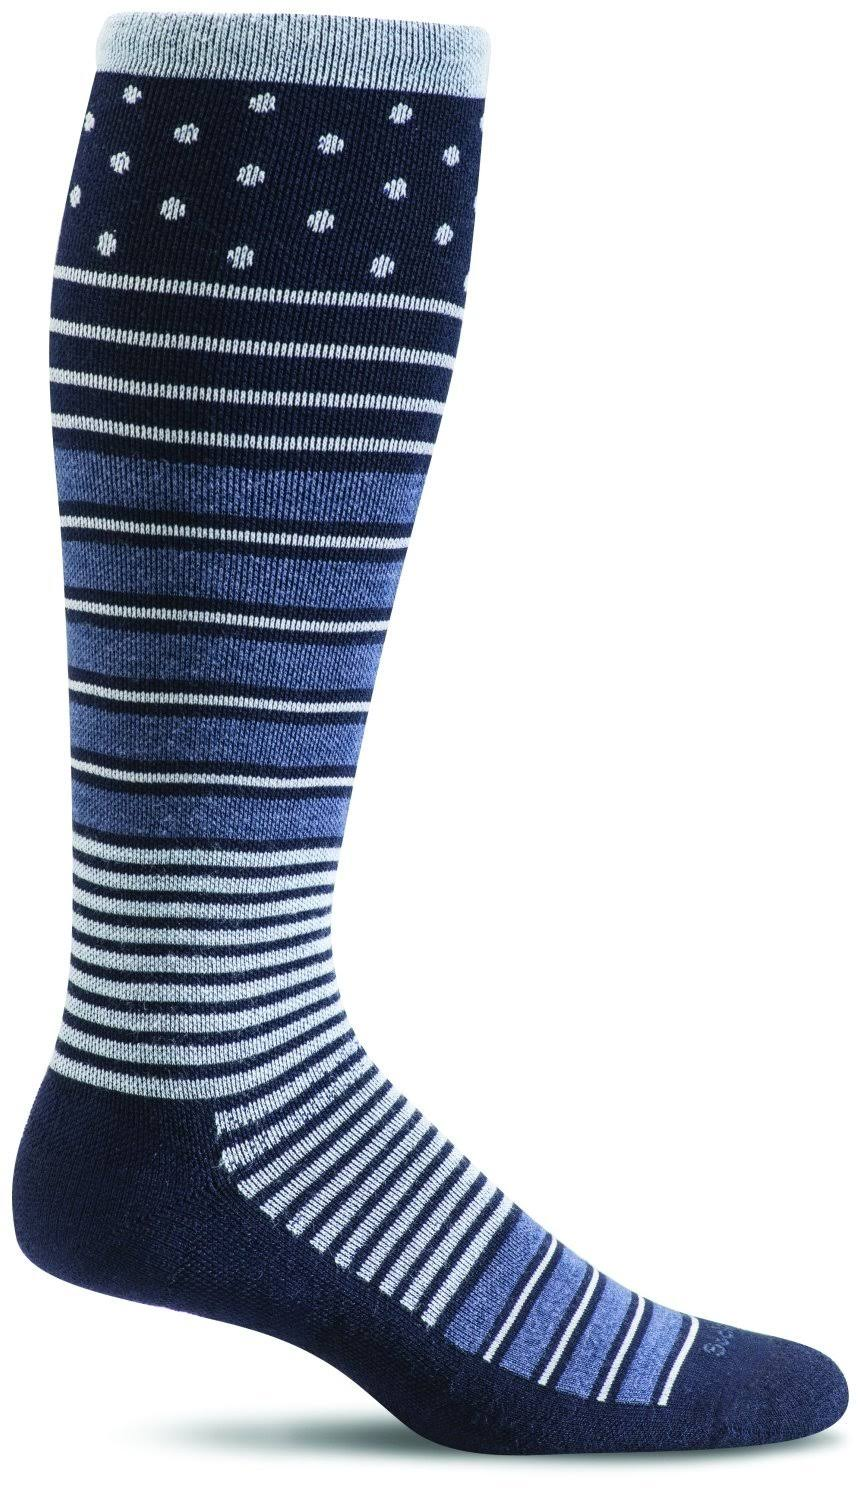 Sockwell Women's Twister Graduated Compression Socks - Navy, Medium